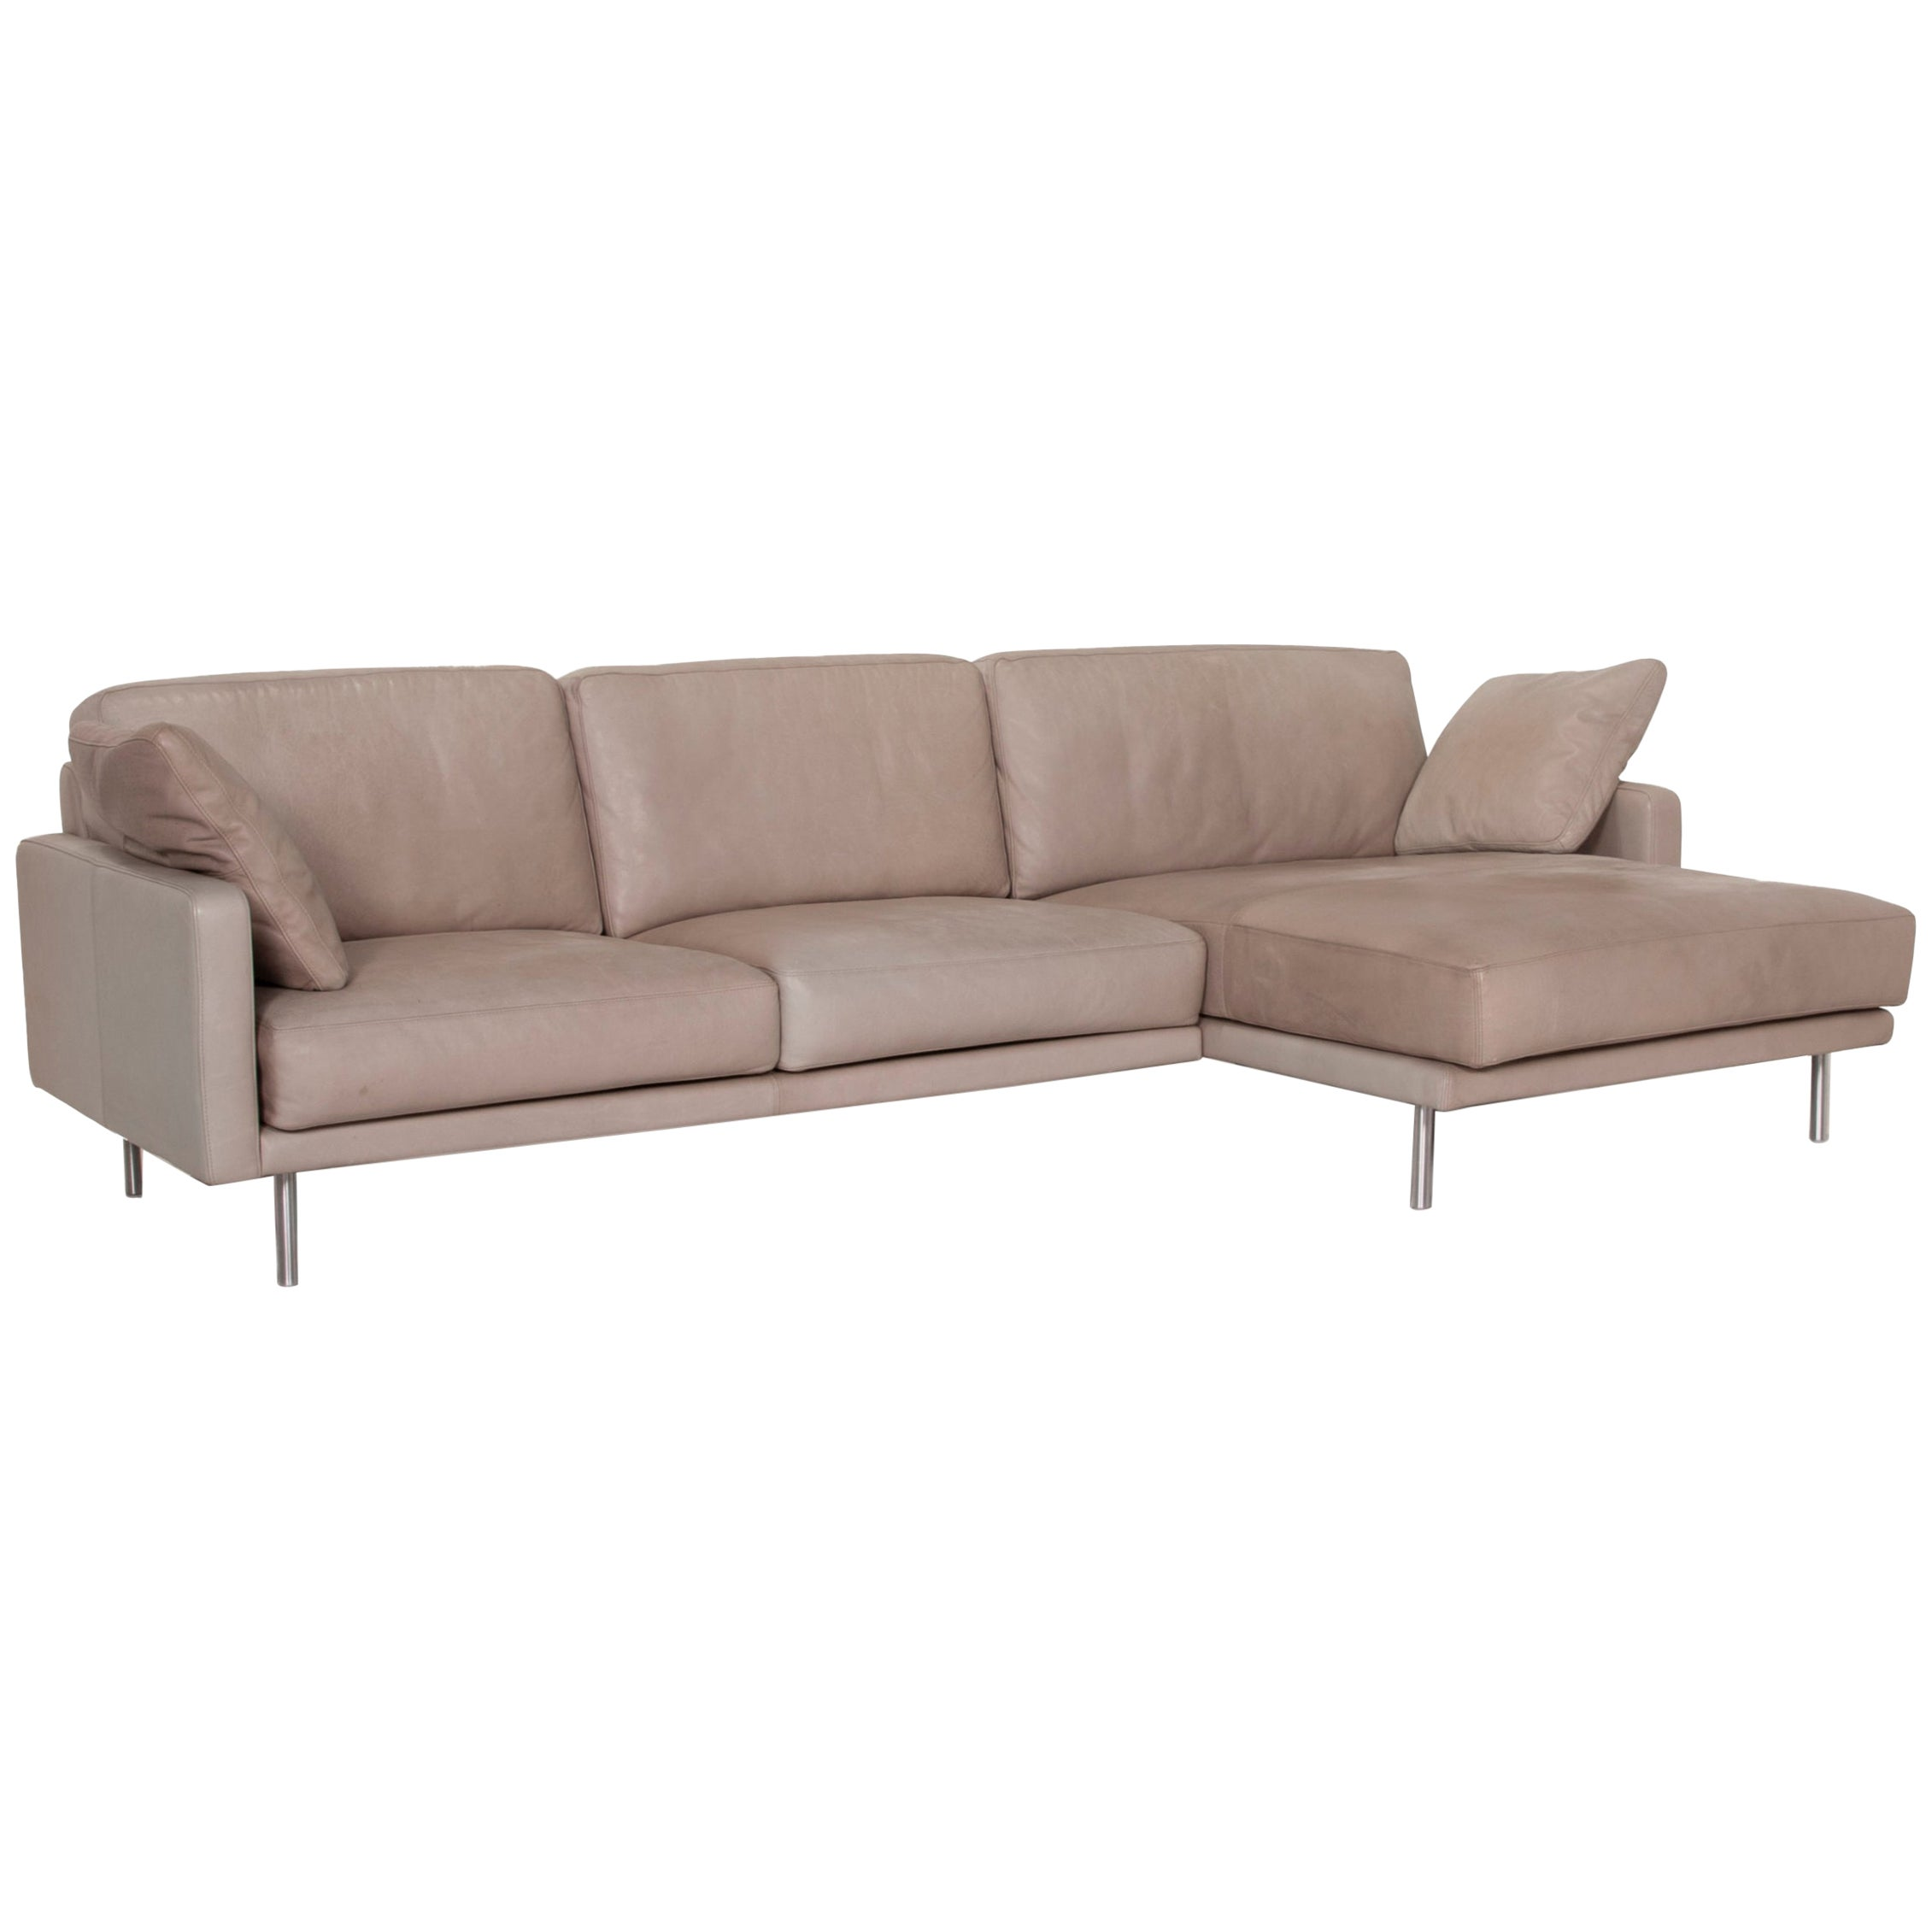 Violetta Leather Sofa Cognac Corner Sofa